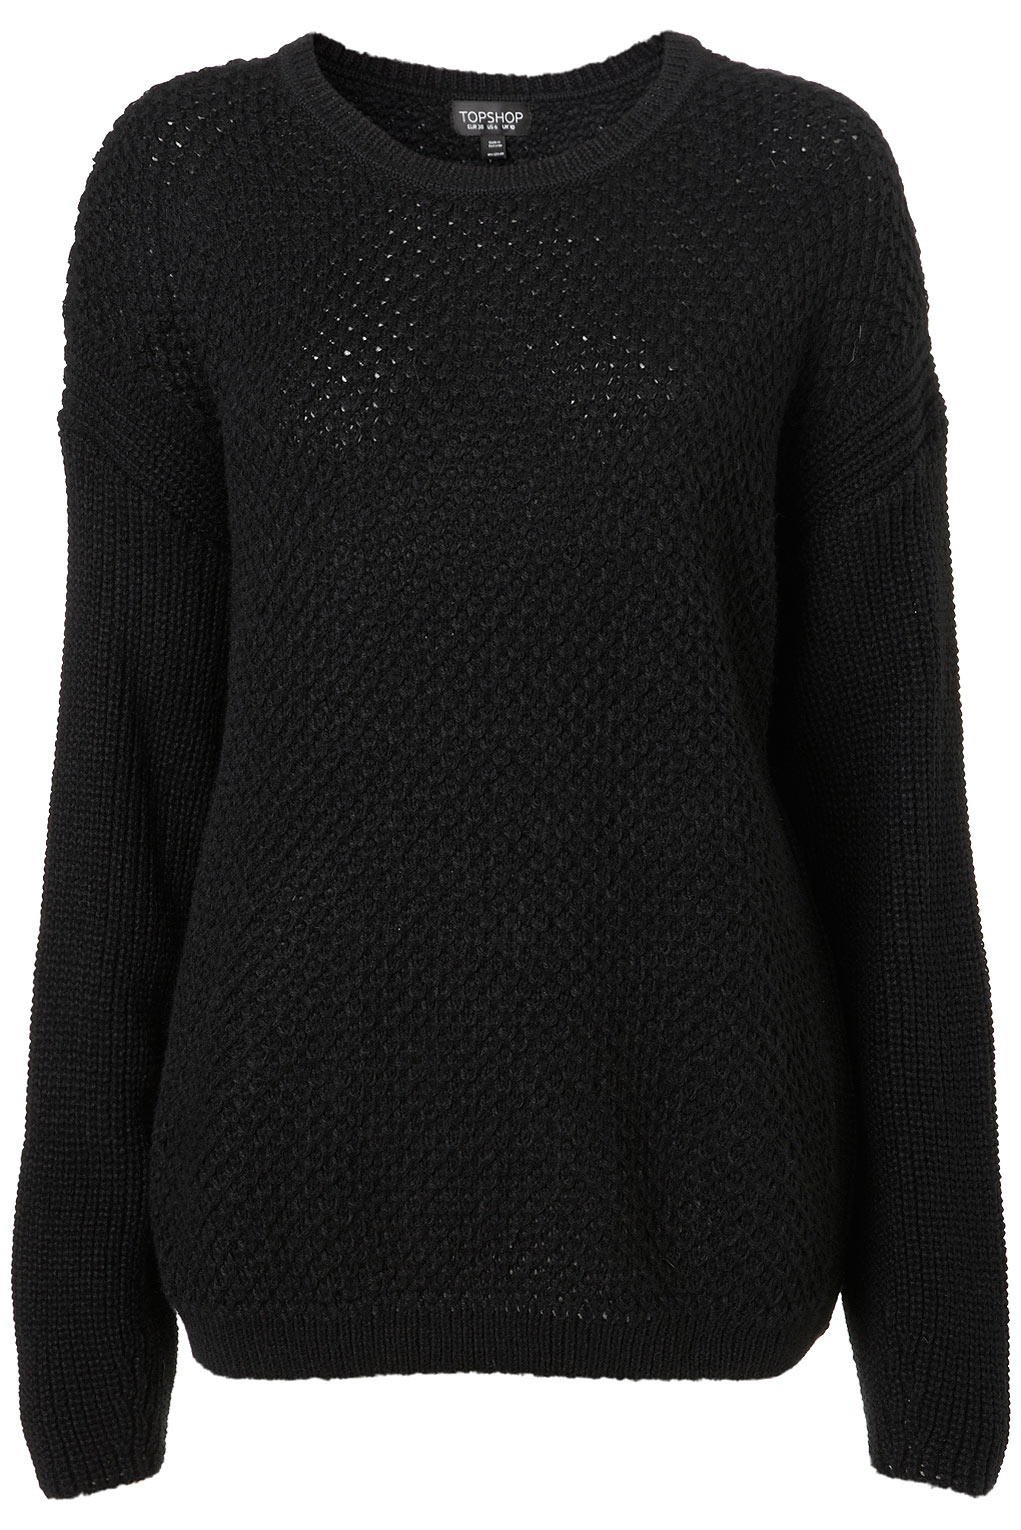 Knitting Pattern Slouch Jumper : Topshop Knitted Textured Slouch Jumper in Black Lyst